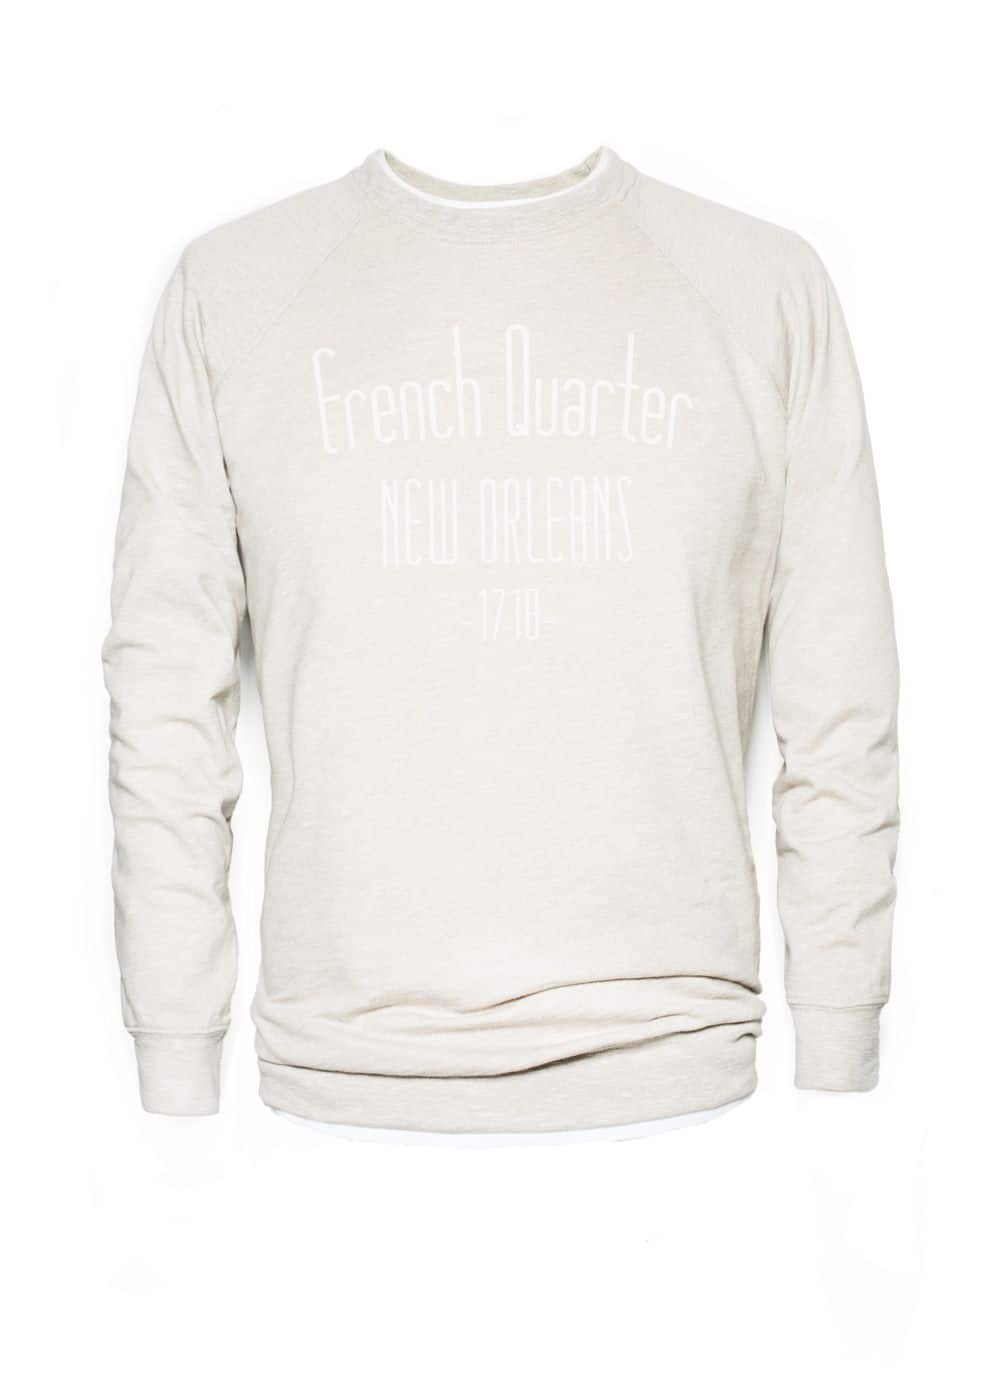 New orleans sweatshirt | MANGO MAN